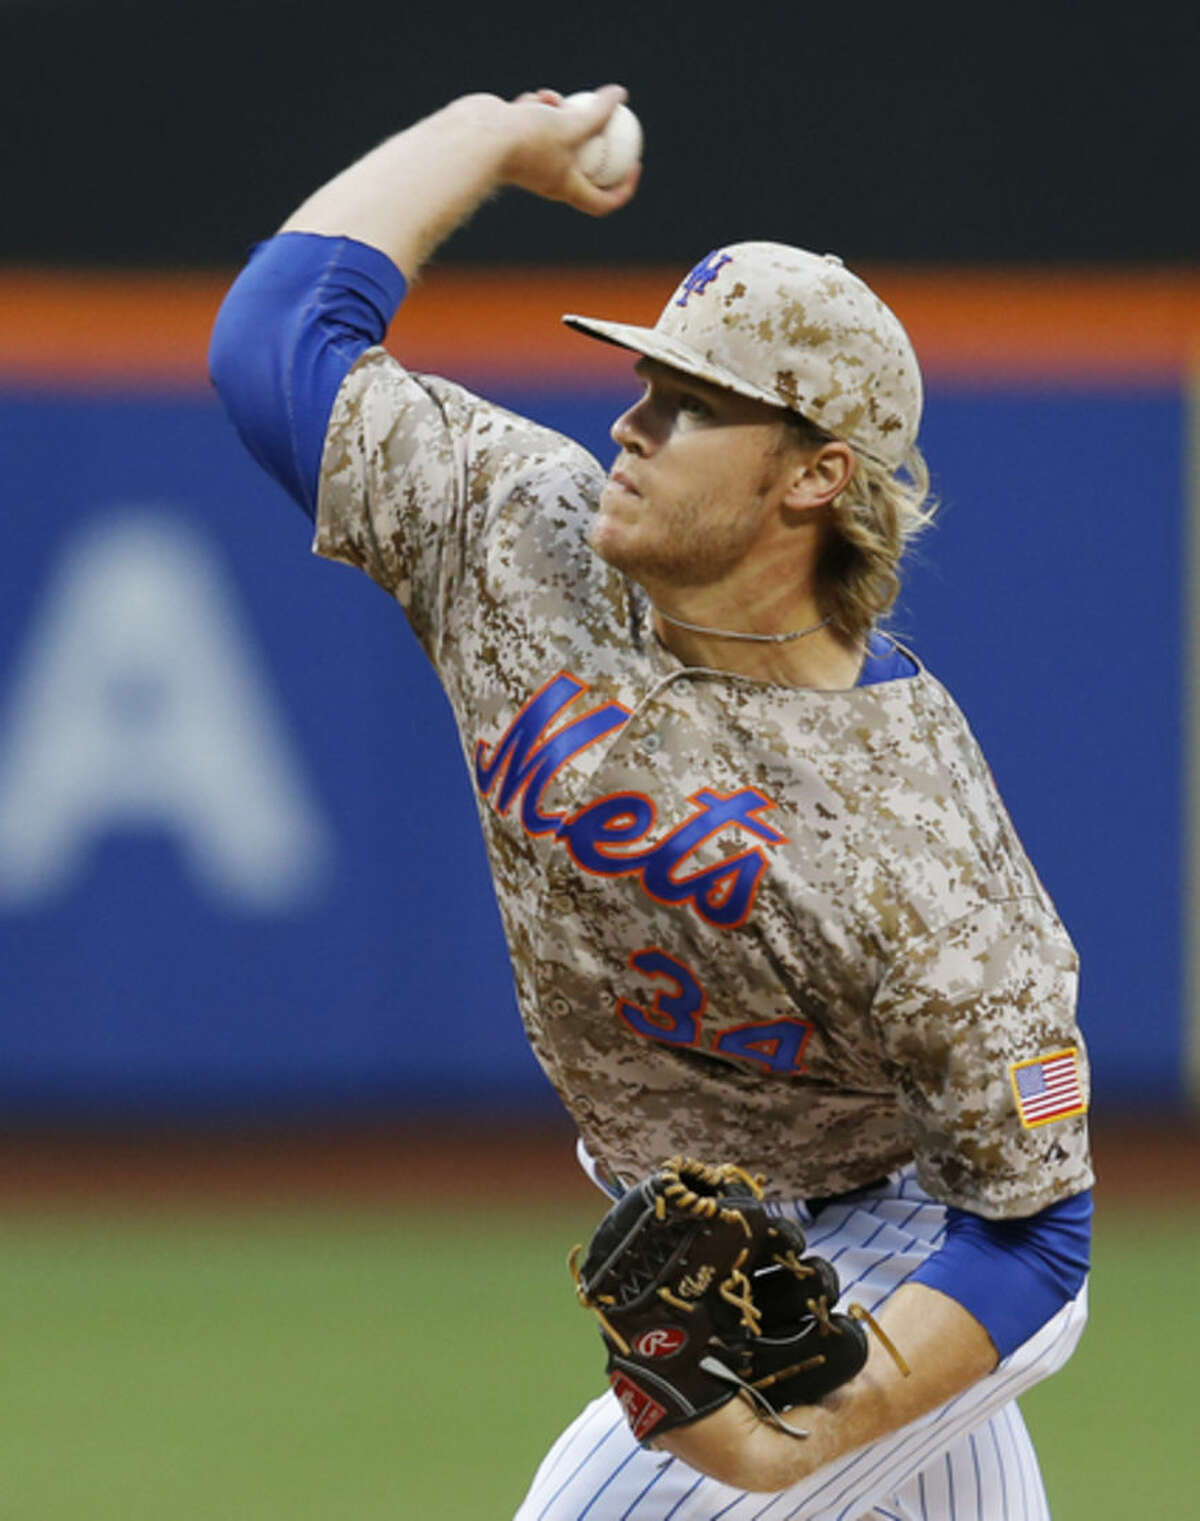 New York Mets starting pitcher Noah Syndergaard delivers in the first inning of a baseball game against the Toronto Blue Jays in New York, Monday, June 15, 2015. (AP Photo/Kathy Willens)